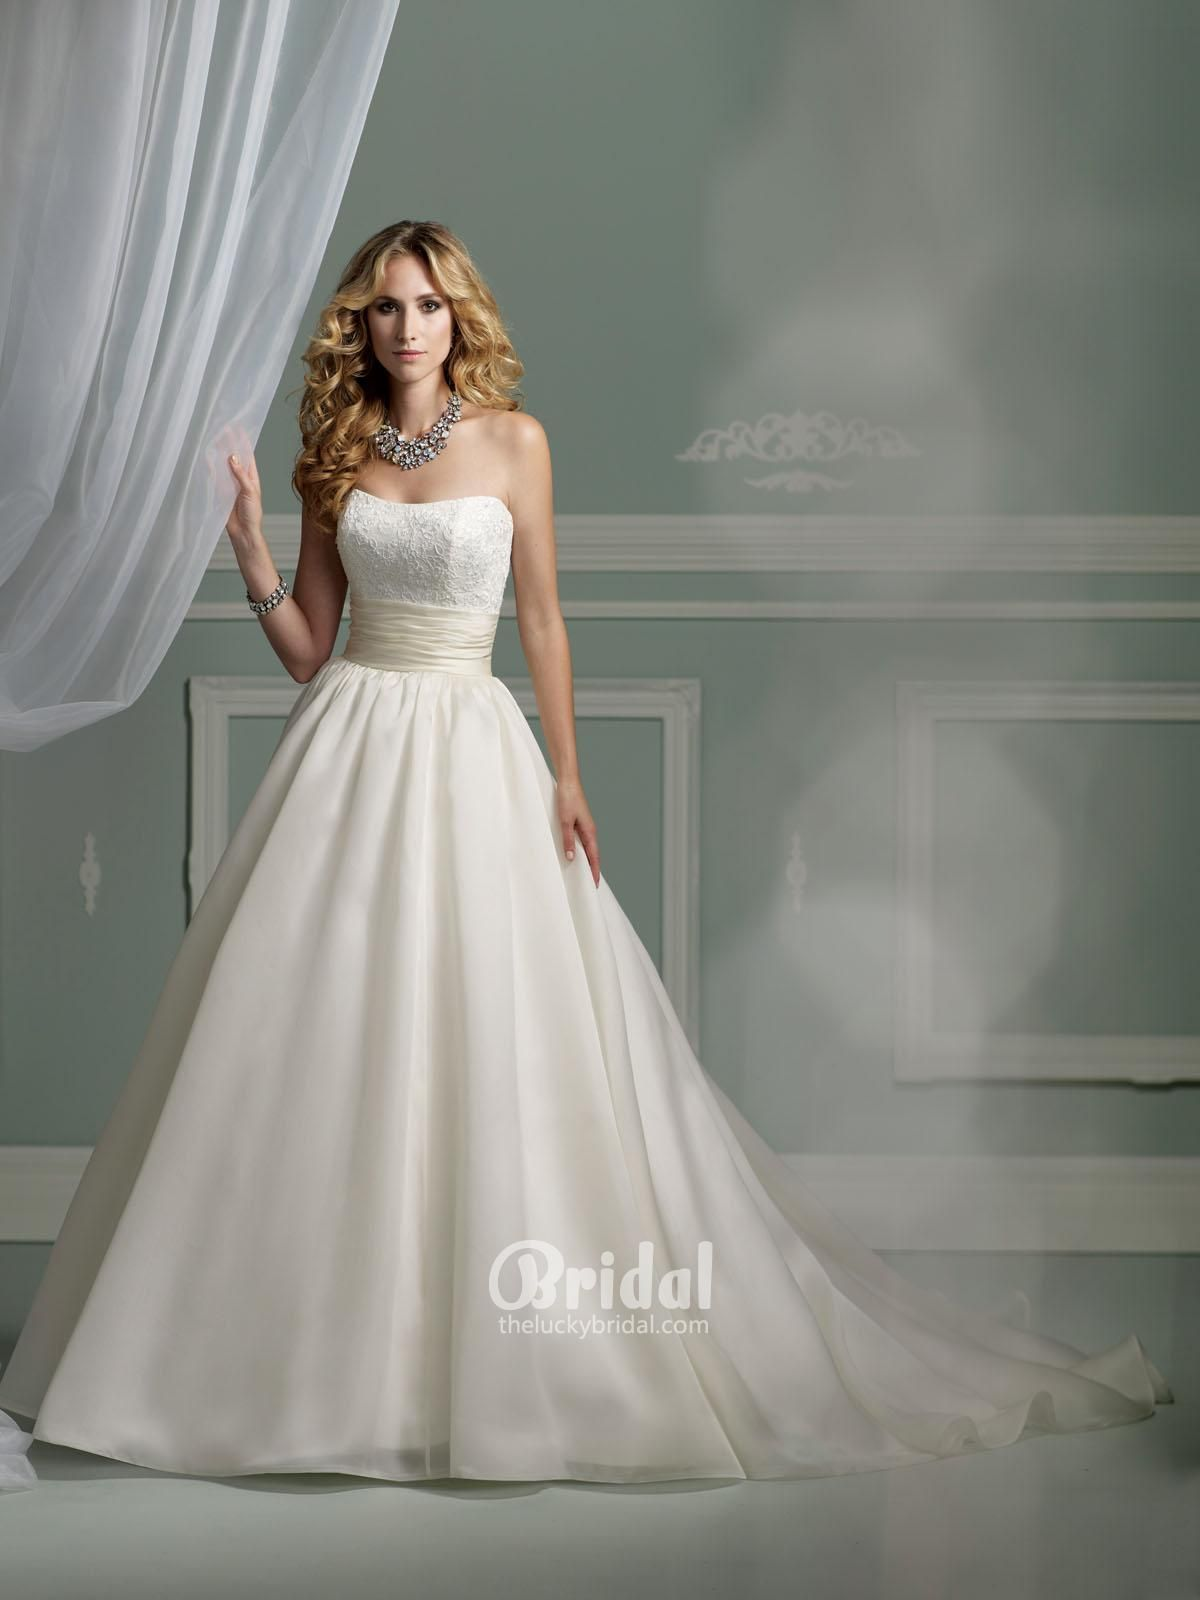 Satin strapless ball gown wedding dress dresses and rings uc